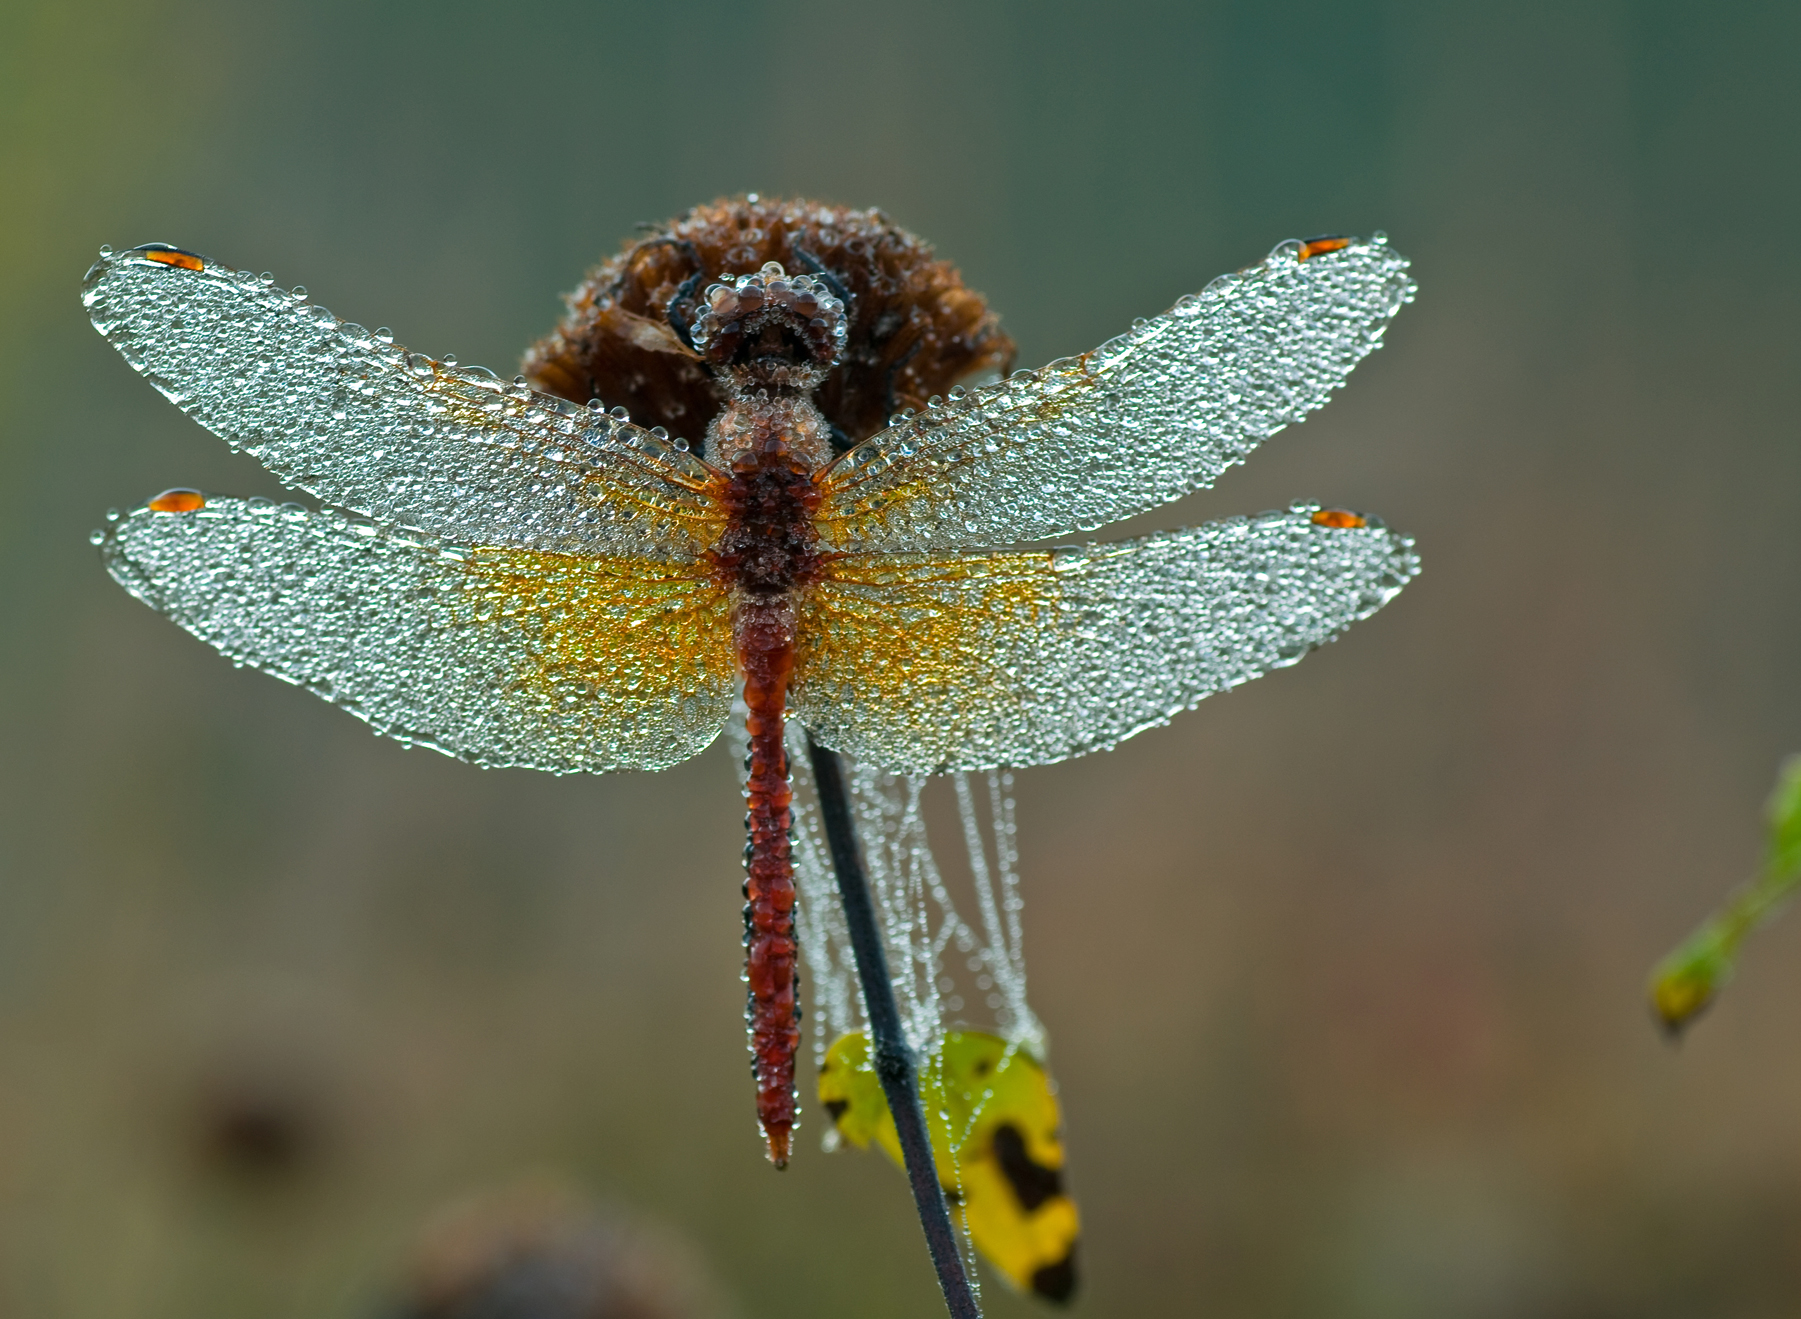 Late Fall Wallpaper Nature Dragonfly Wings Rick Stockwell Photography